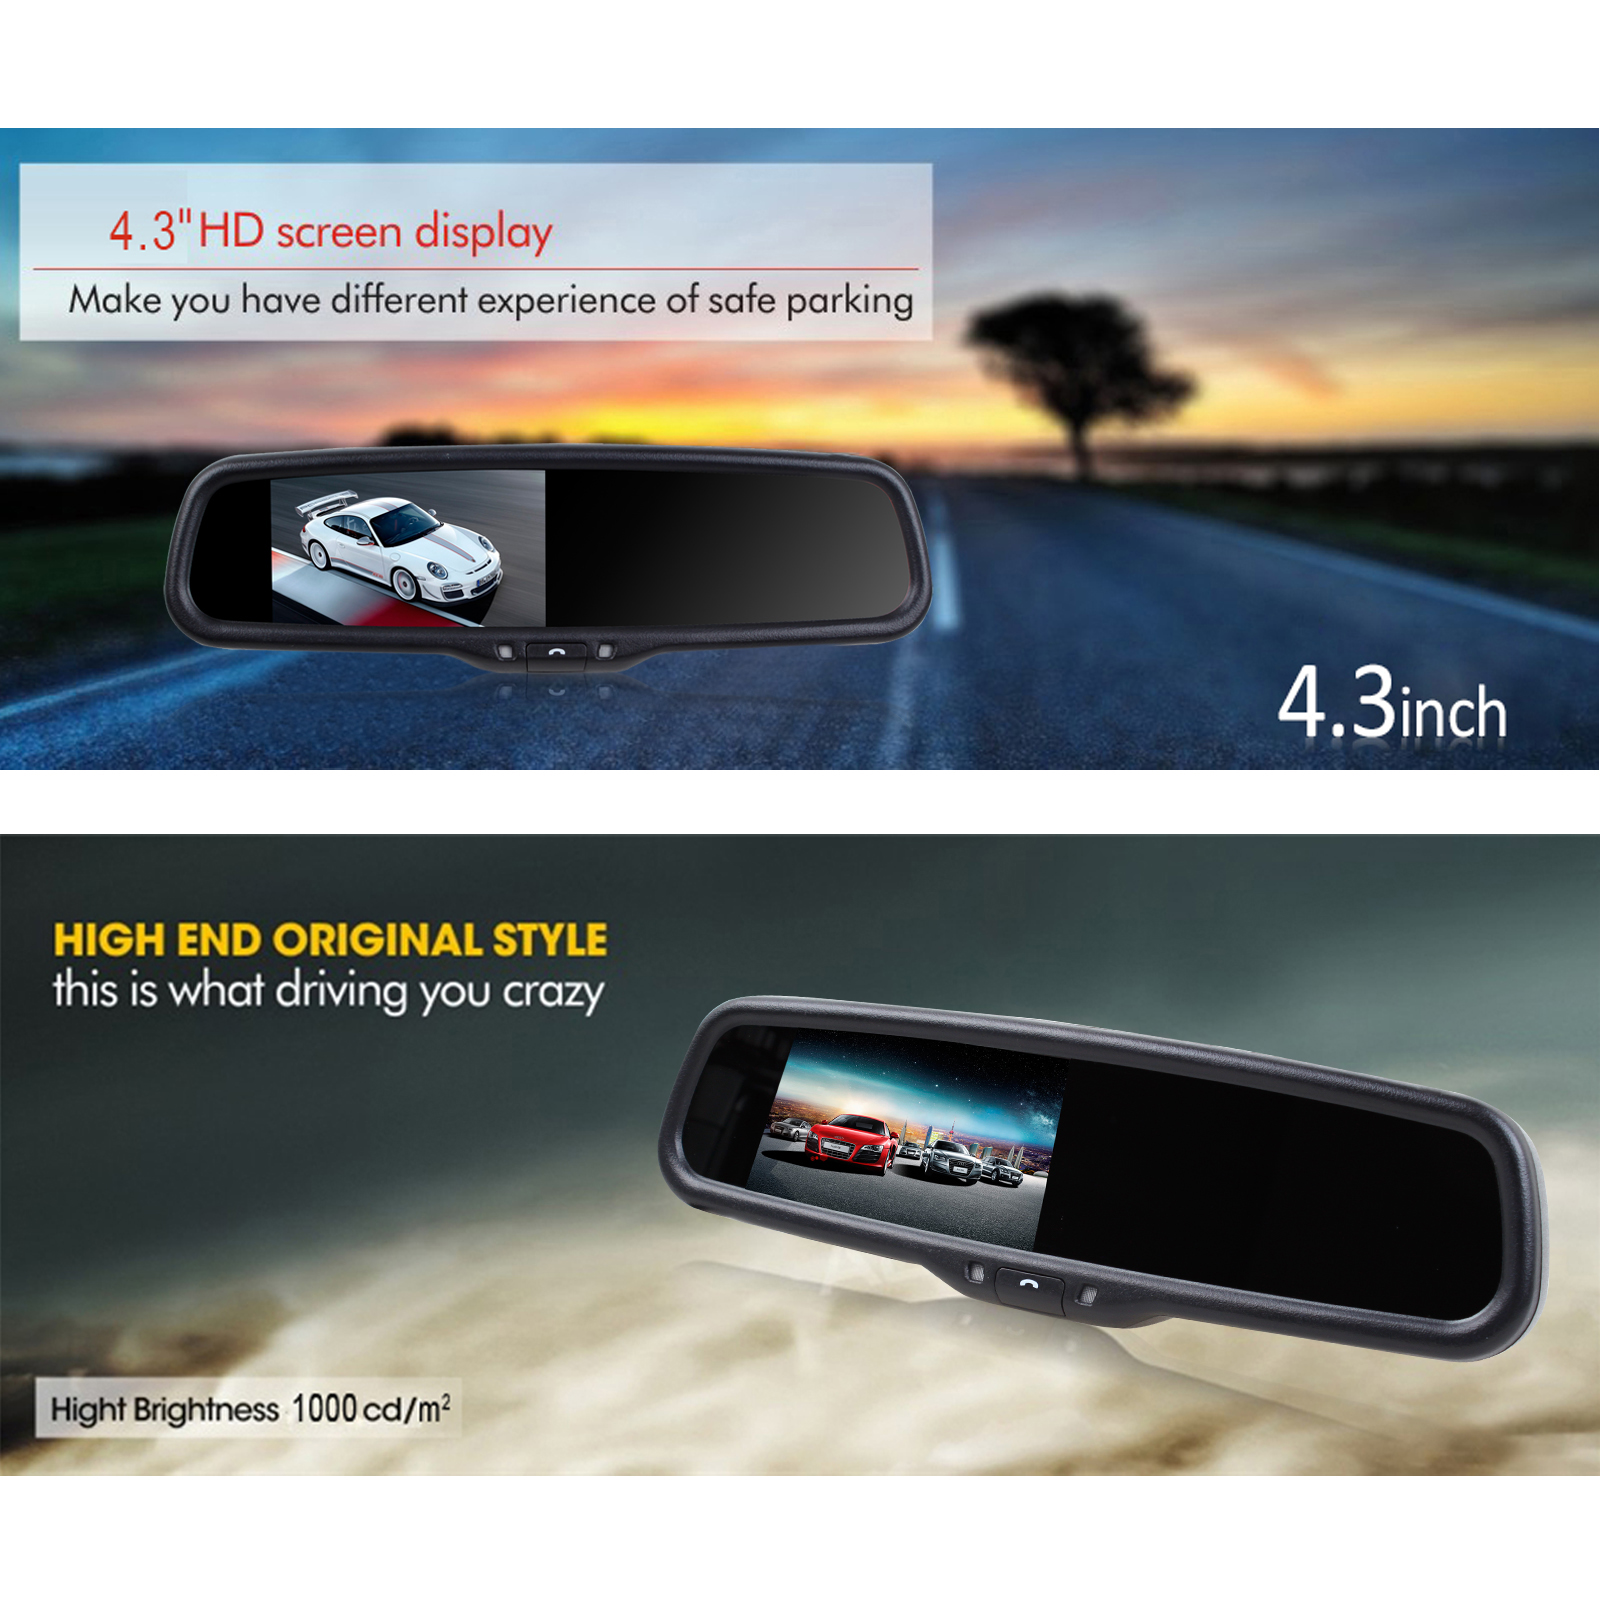 4.3 Inch Rearview Mirror Bluetooth Handsfree Car Kit